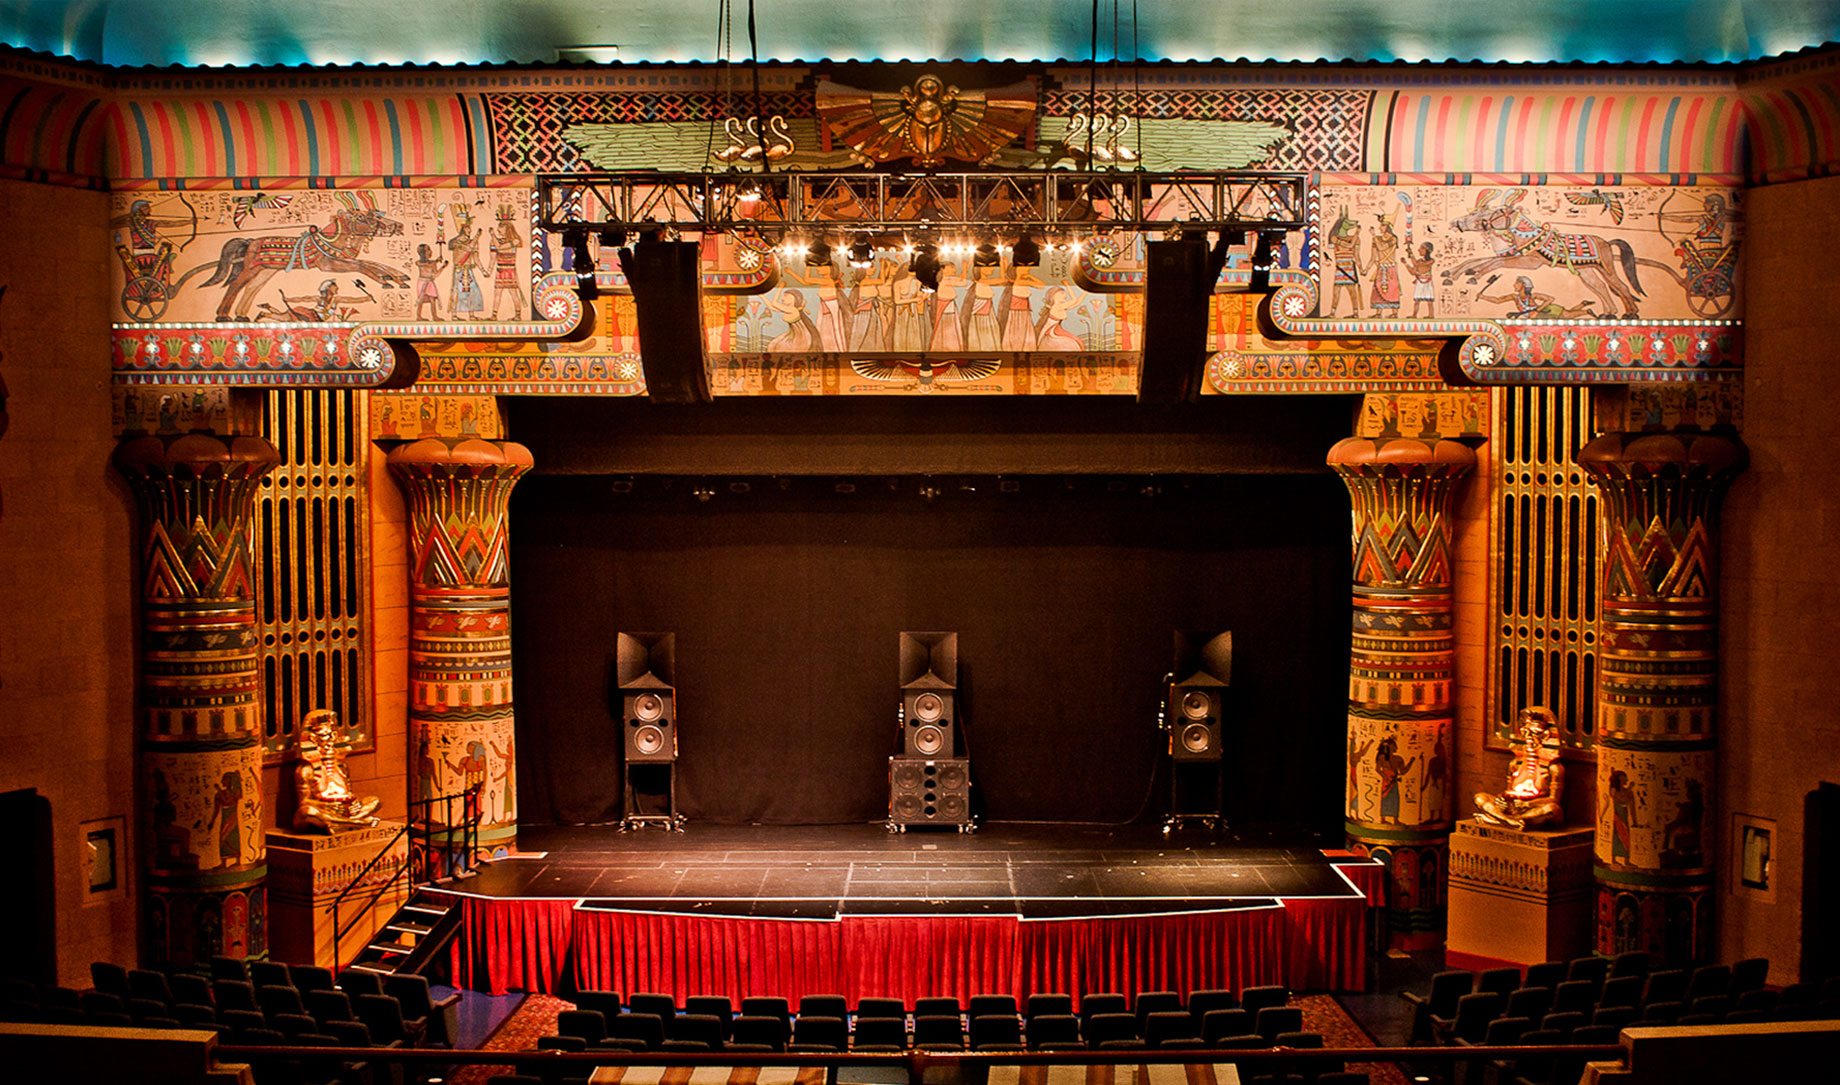 About The Egyptian Theatre